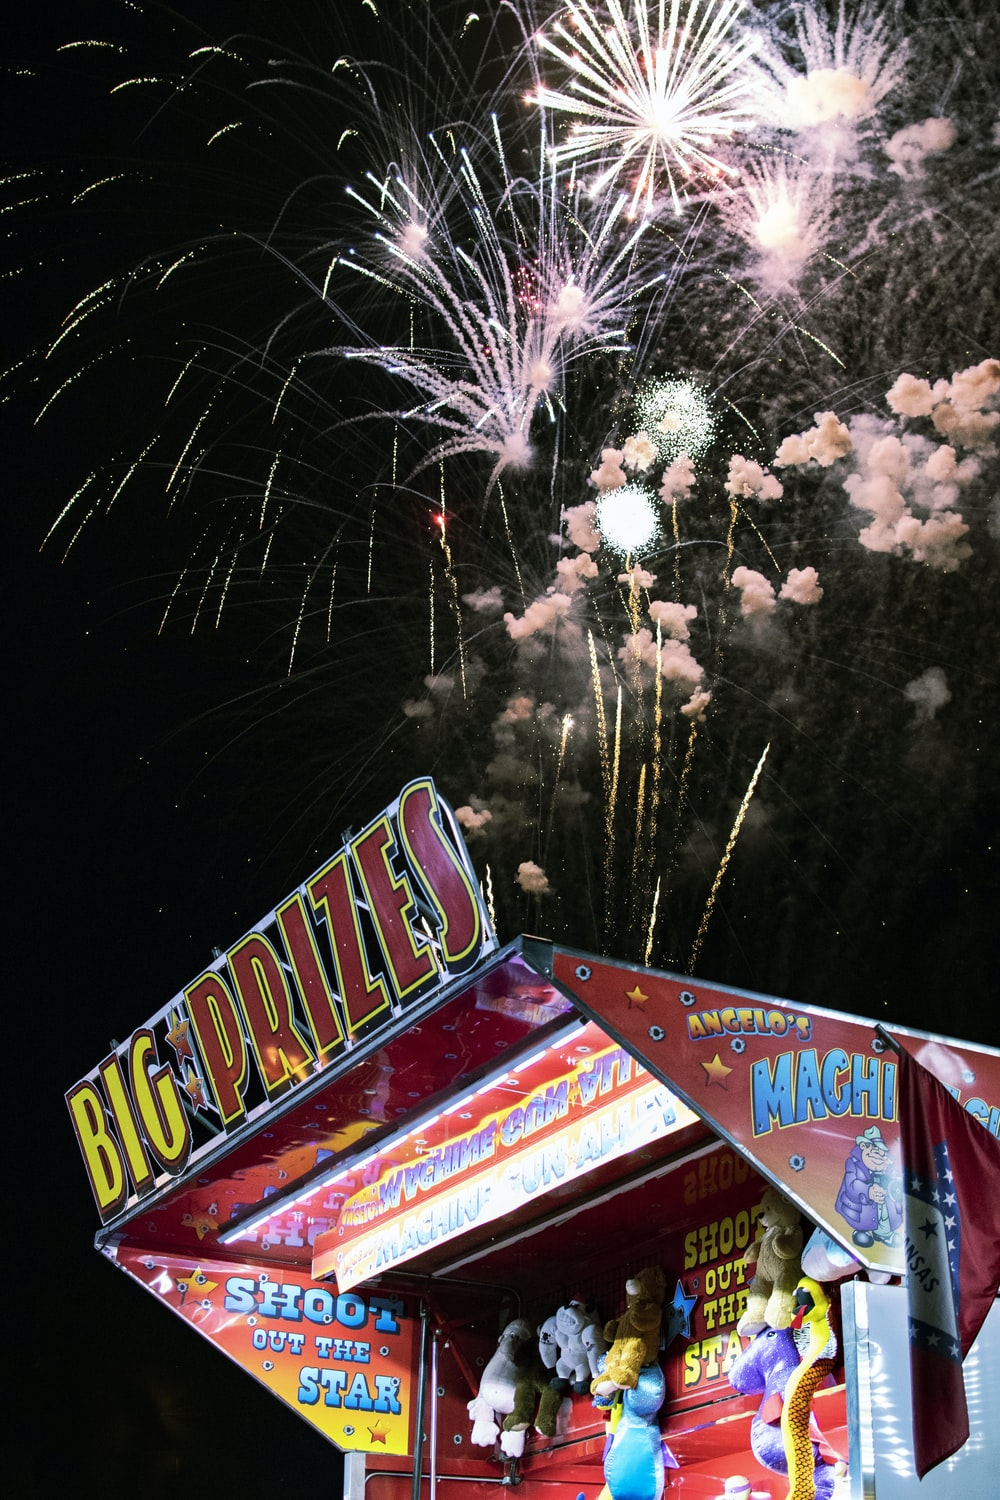 photograph of fireworks over shooting booth